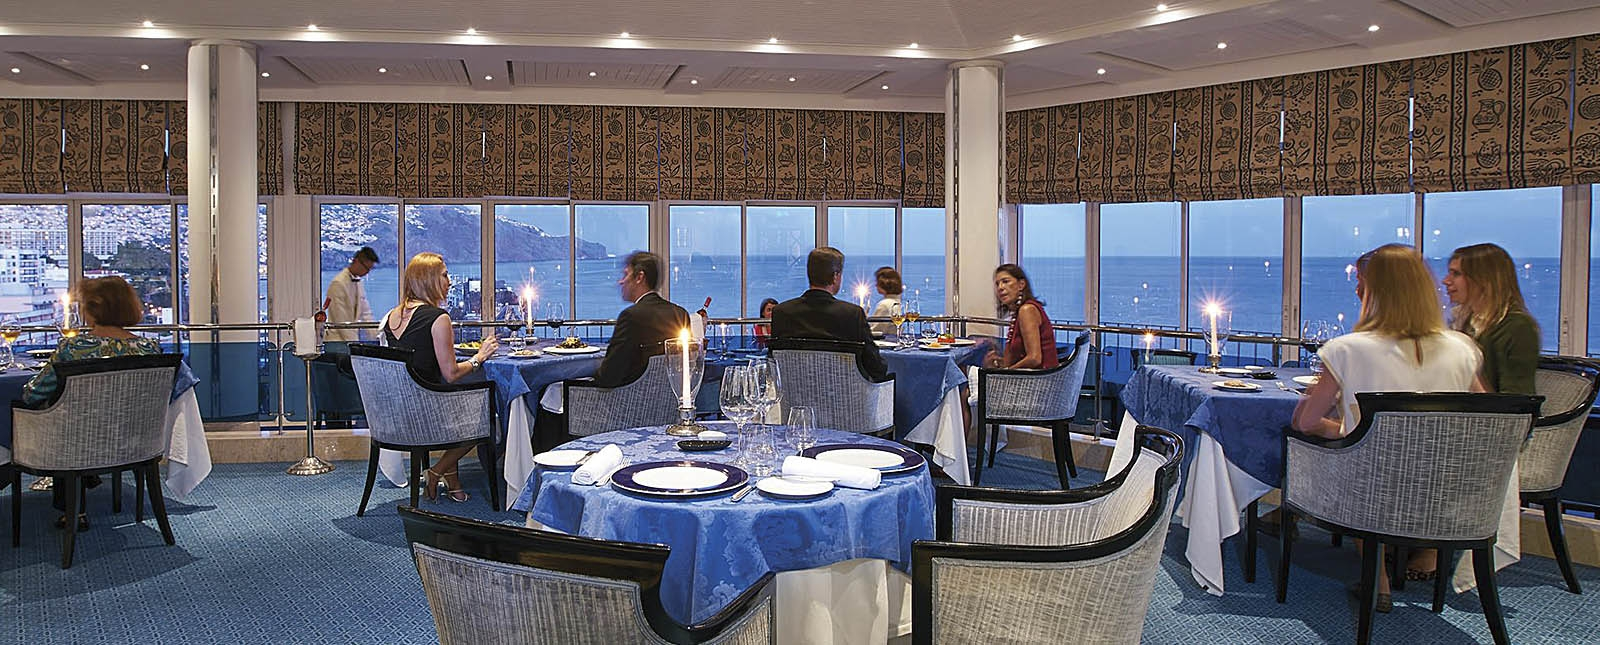 Best Restaurants in the Portuguese Islands (1) restaurants Our Favourite Restaurants in Madeira william 3